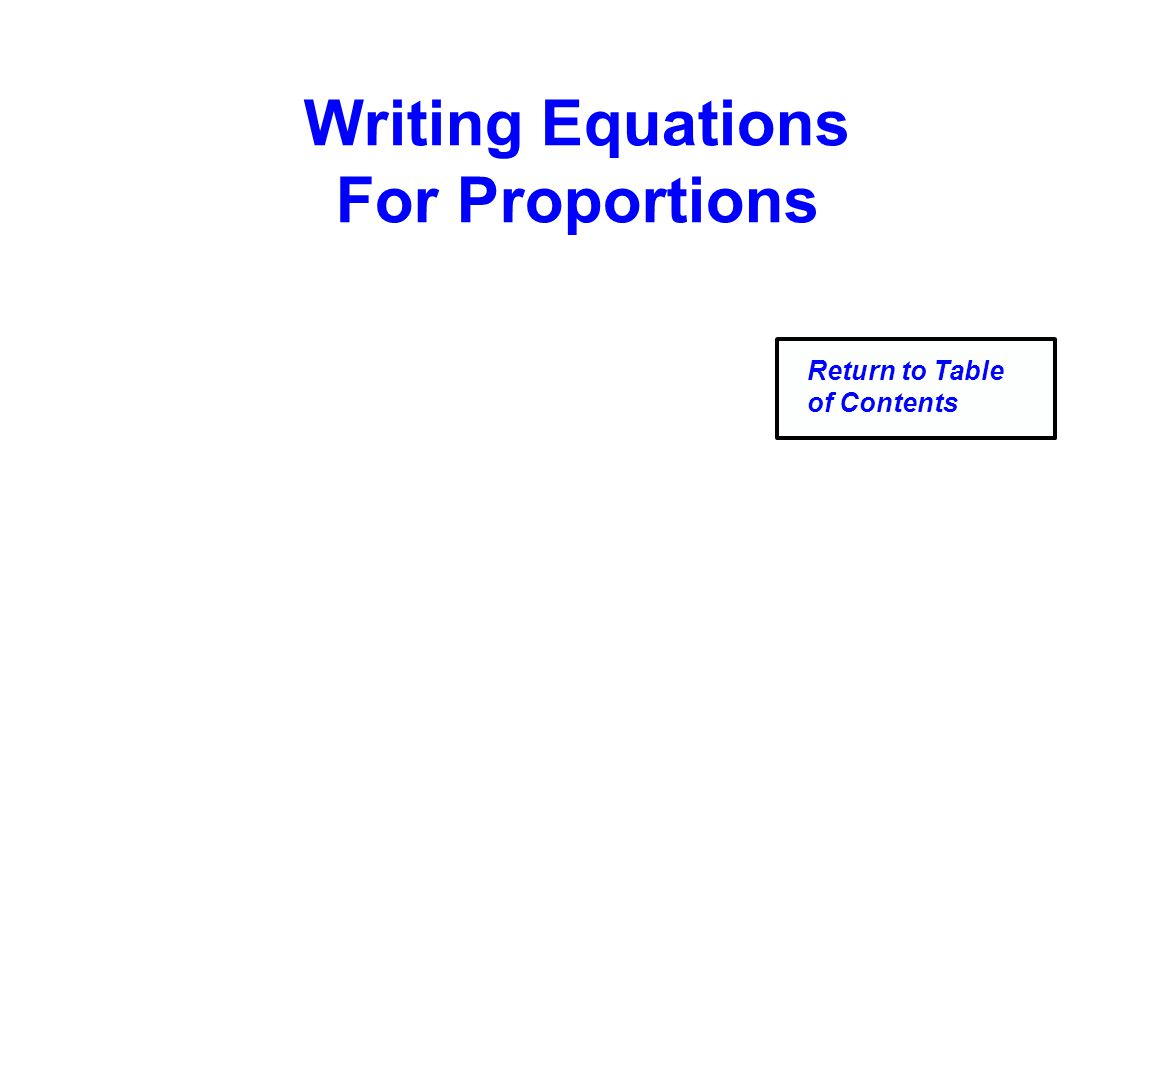 Writing Equations For Proportions Return to Table of Contents